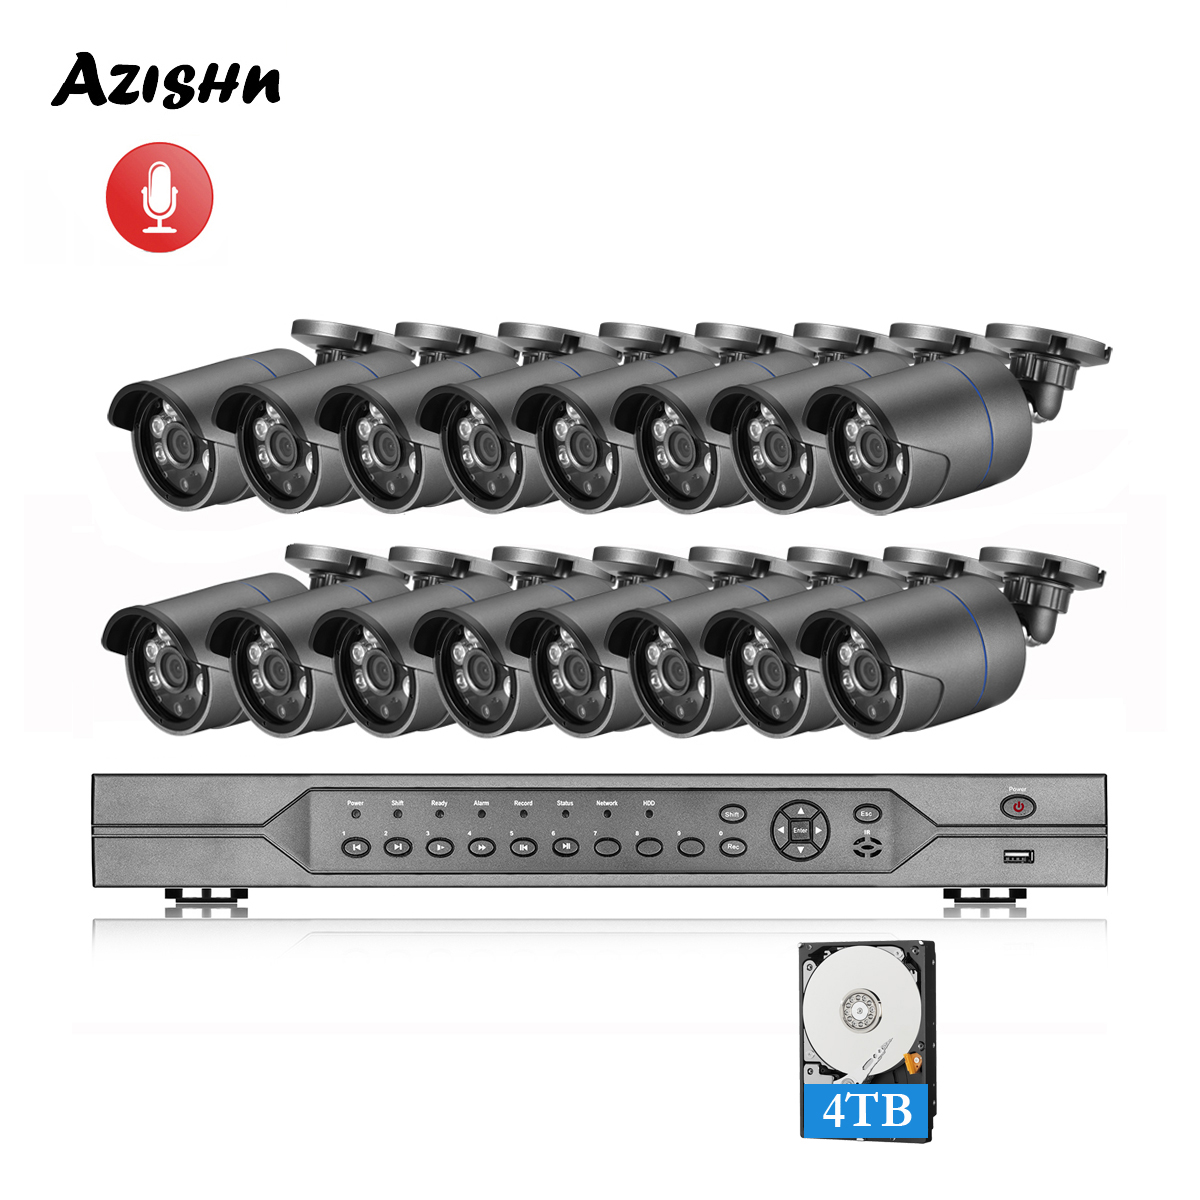 AZISHN 16CH 5MP POE NVR Kit H.265 CCTV Security System Waterproof  5MP 1/2.8